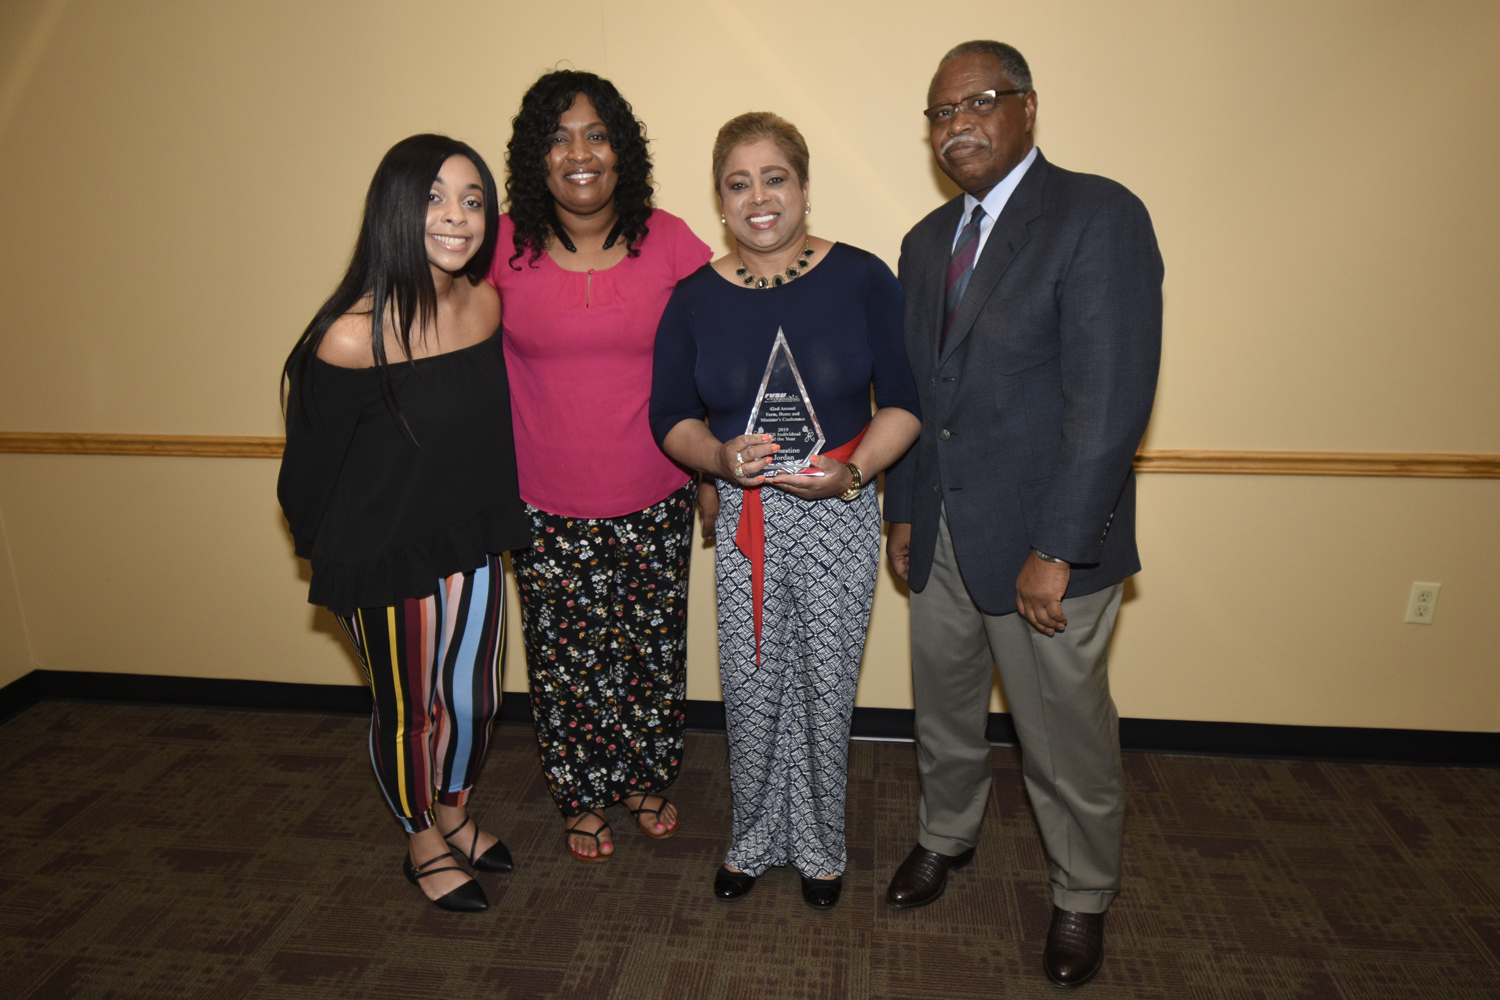 Millicent Price (second from left), FVSU Extension agent for Crawford County and Dr. Mark Latimore Jr. (far right) present Earnestine Jordan (holding trophy) with the 2019 FACS Individual of the Year Award.